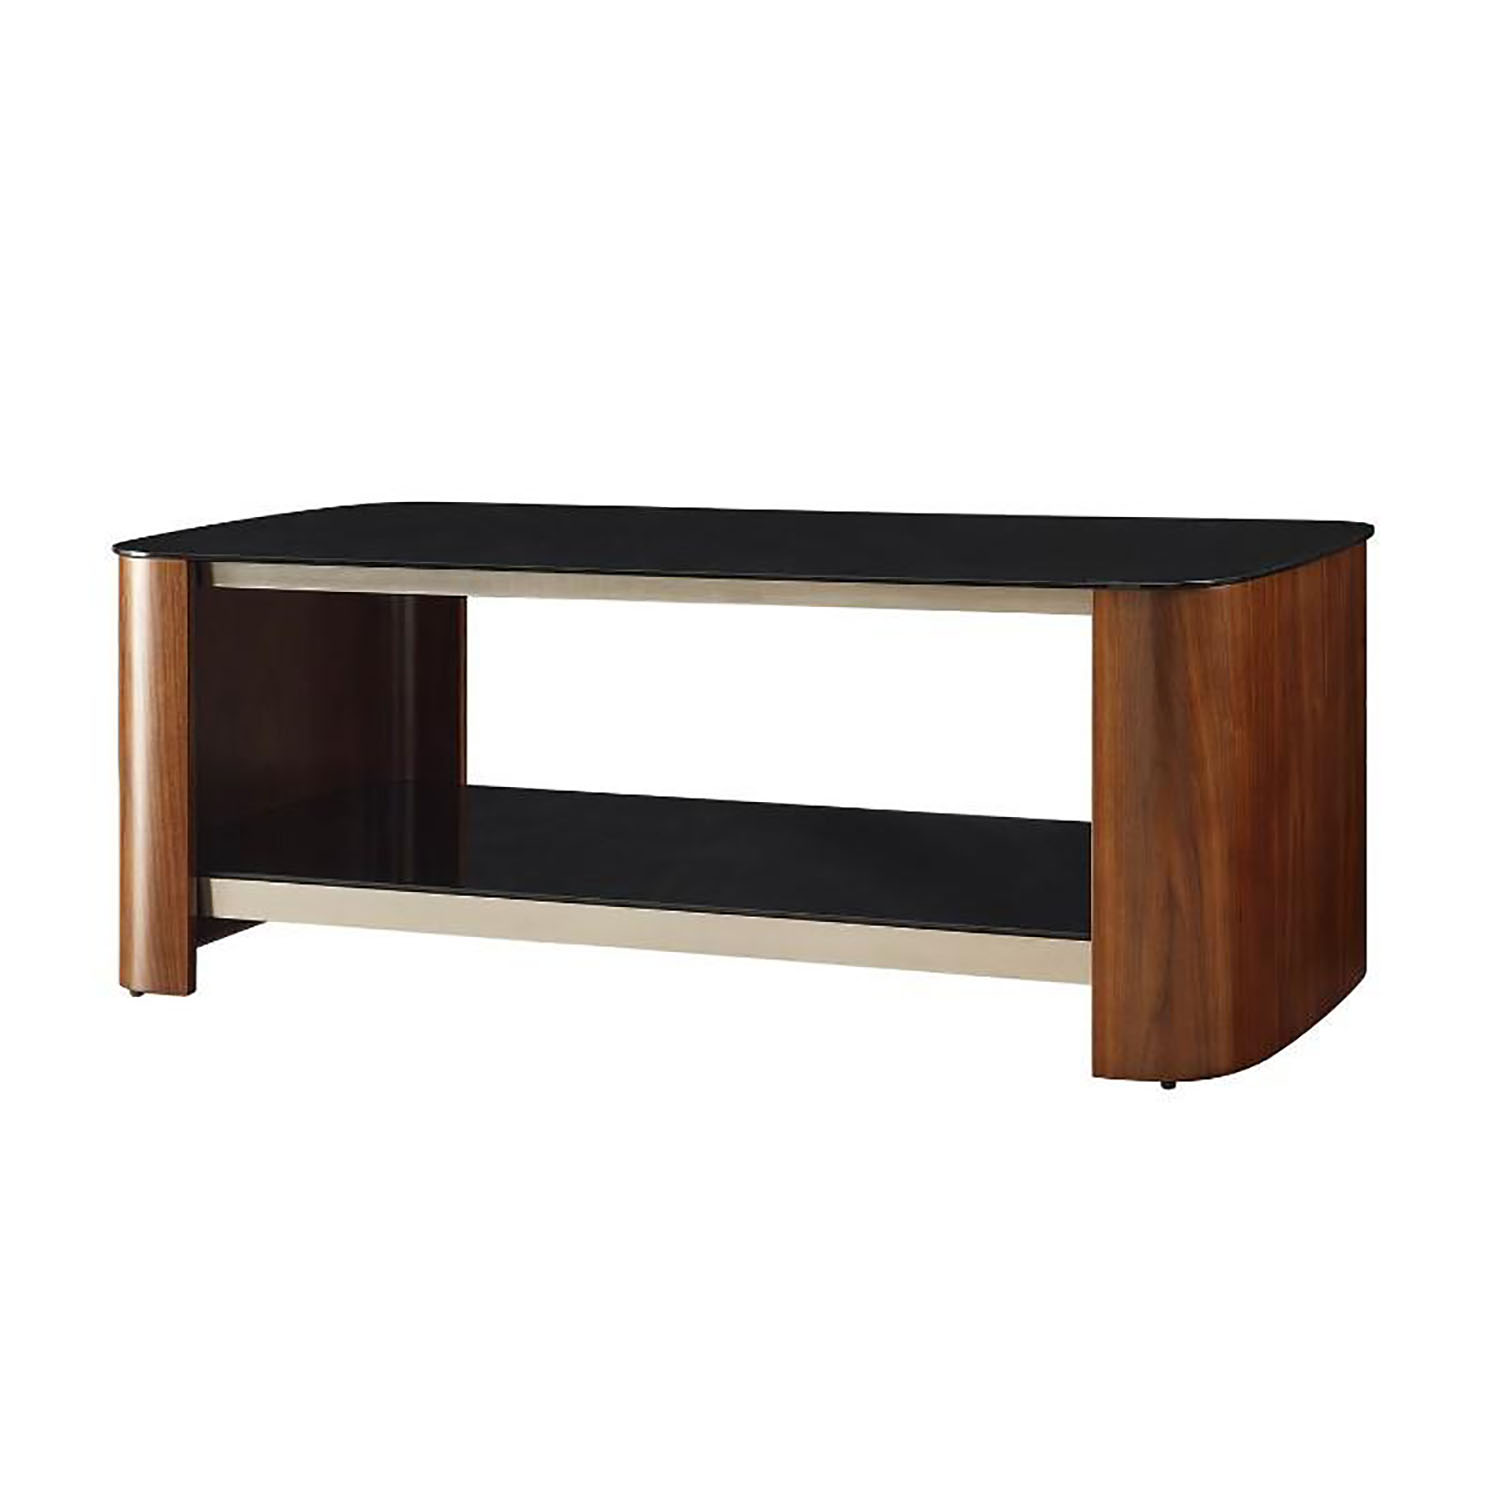 Image of Jual Melbourne Coffee Table